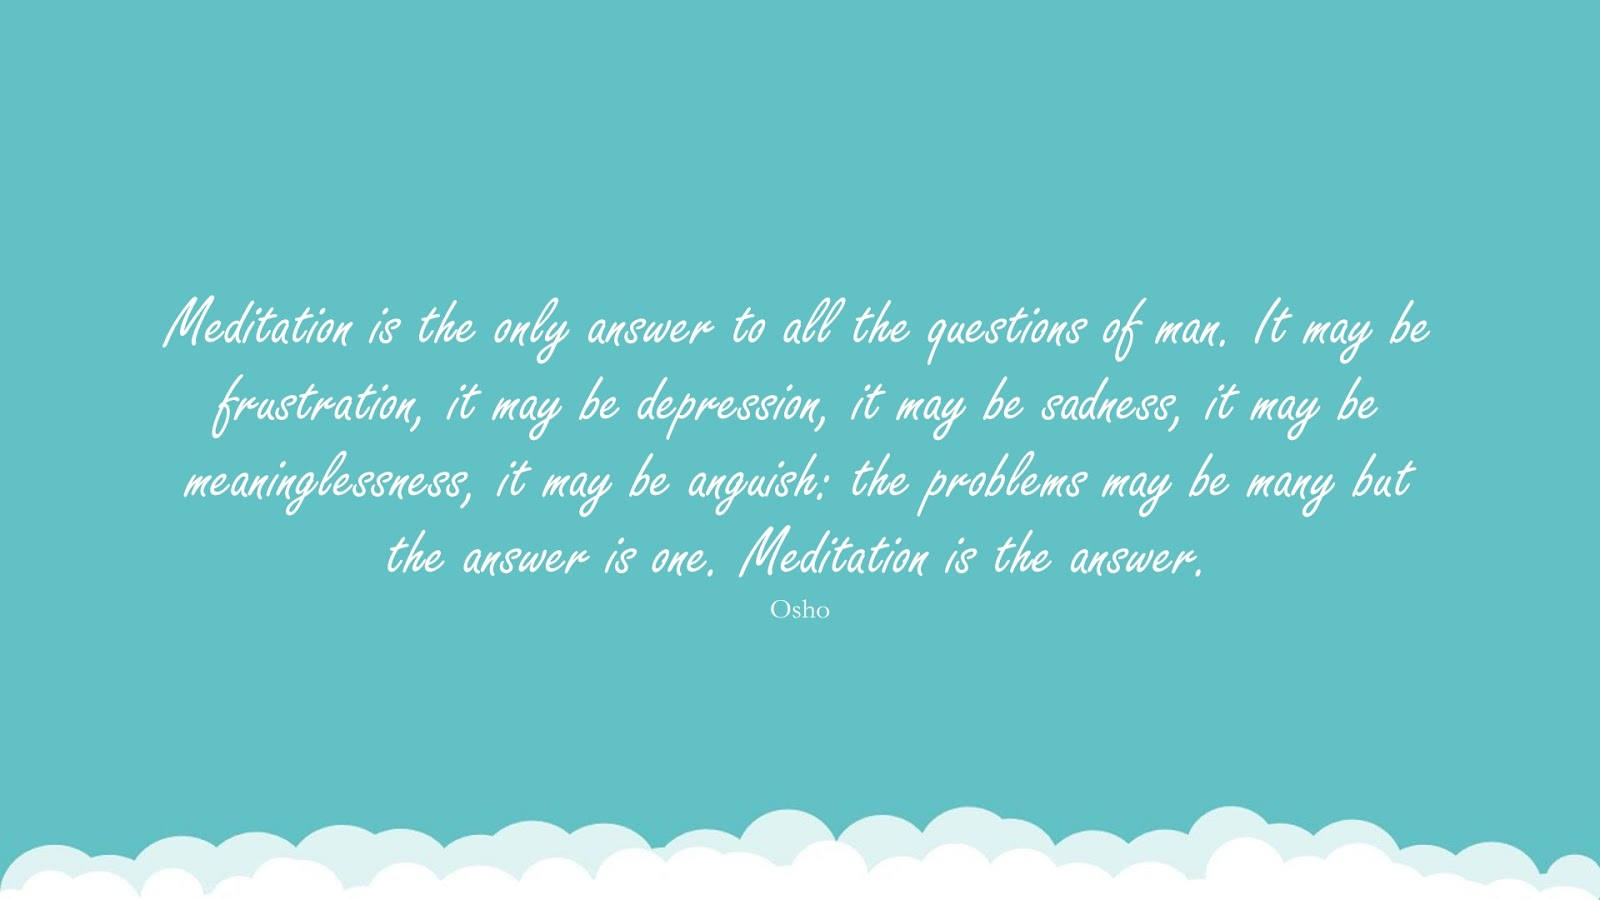 Meditation is the only answer to all the questions of man. It may be frustration, it may be depression, it may be sadness, it may be meaninglessness, it may be anguish: the problems may be many but the answer is one. Meditation is the answer. (Osho);  #DepressionQuotes